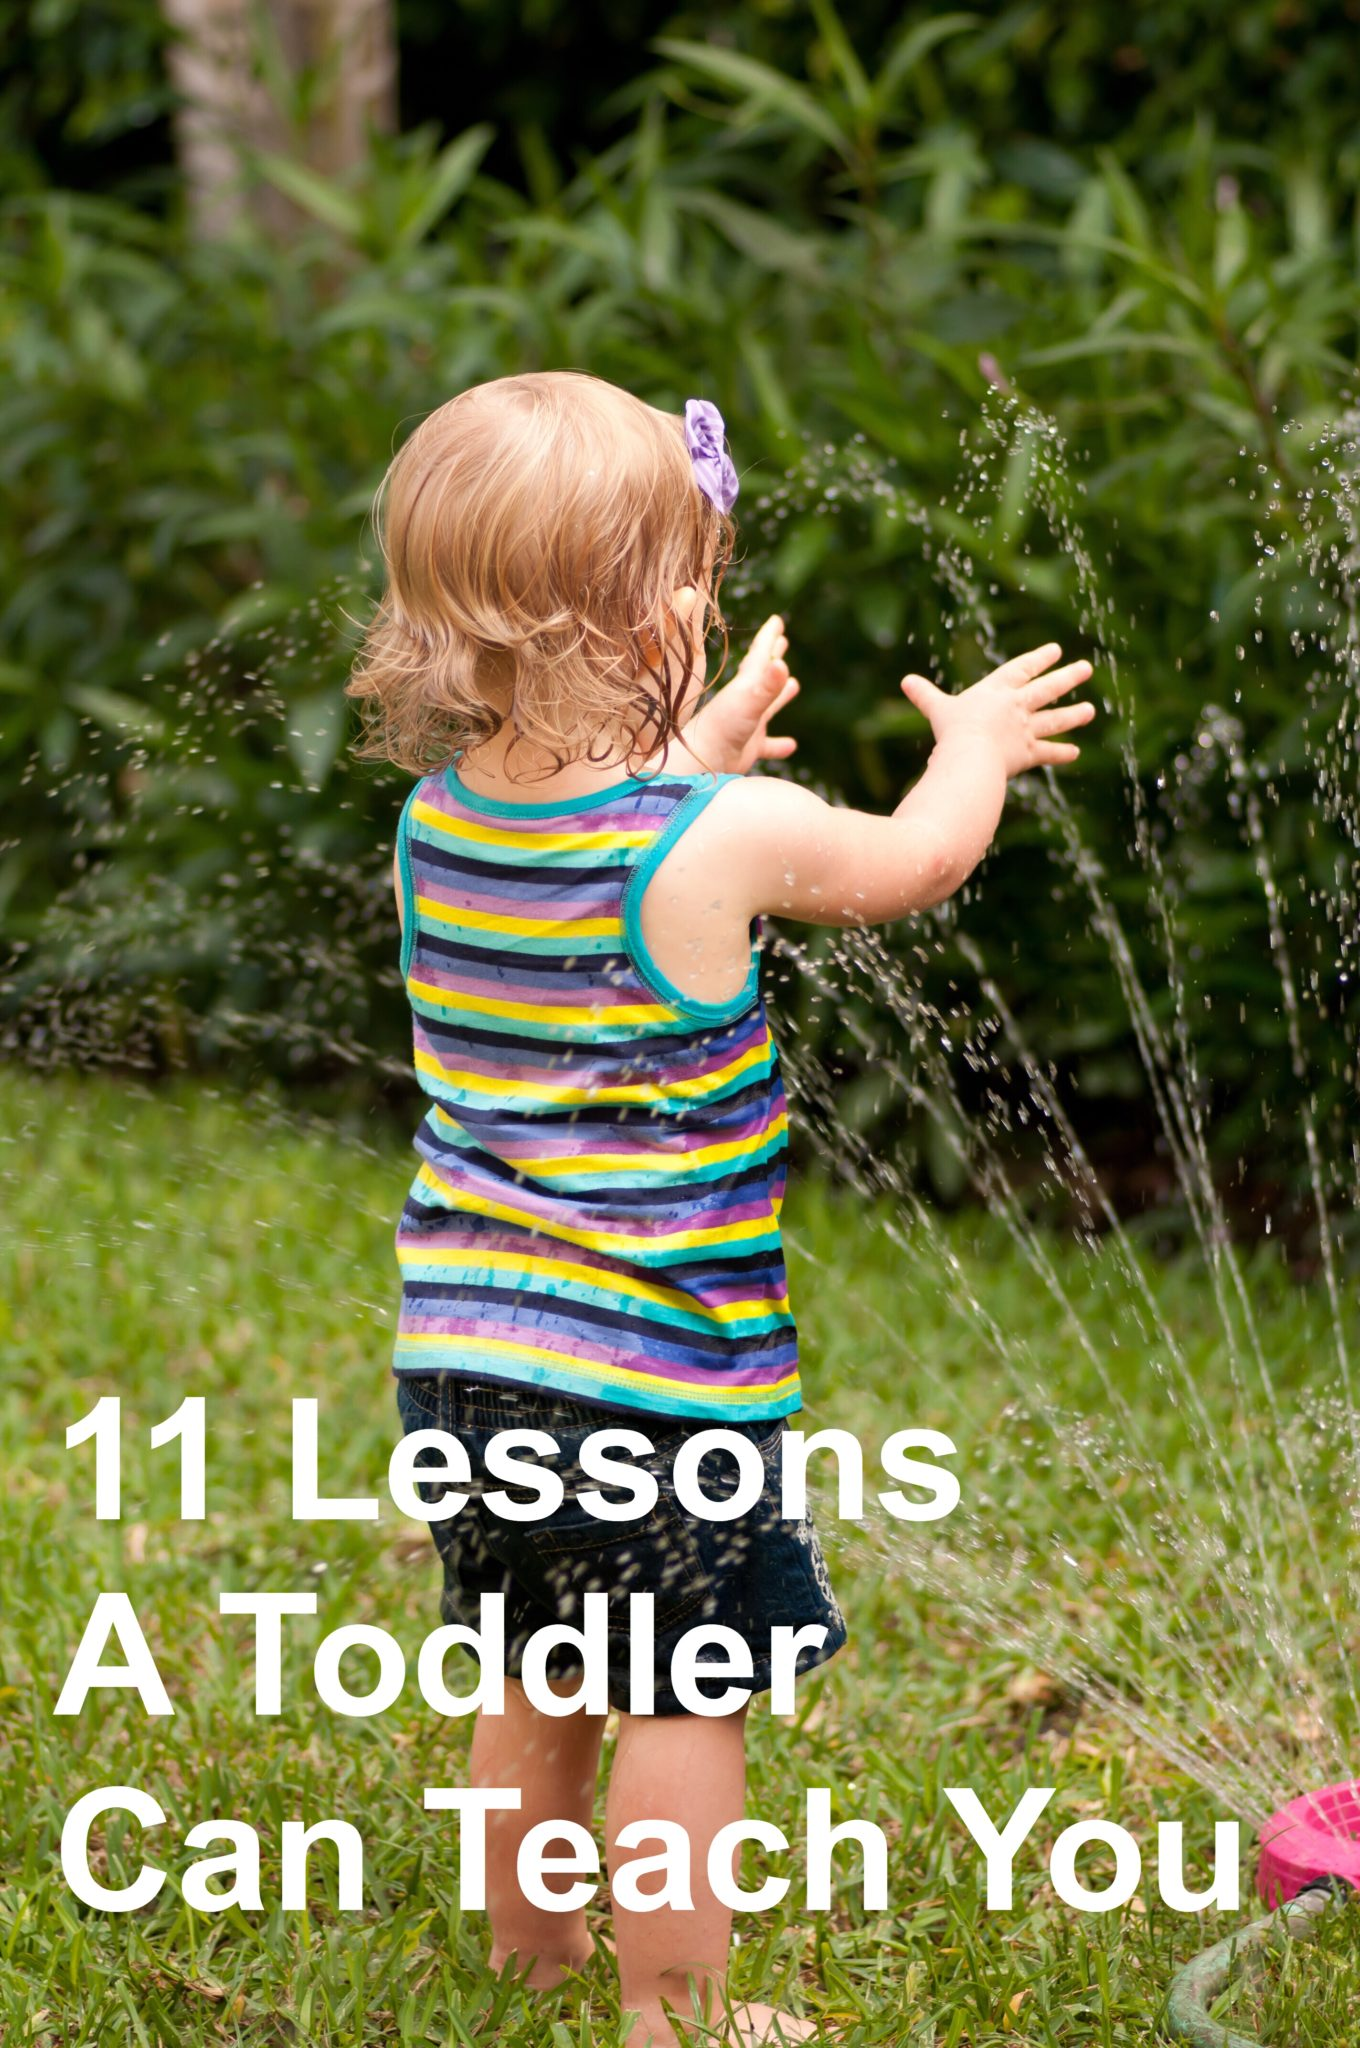 11 Lessons A Toddler Can Teach You. Toddler girl playing with hose, pin.